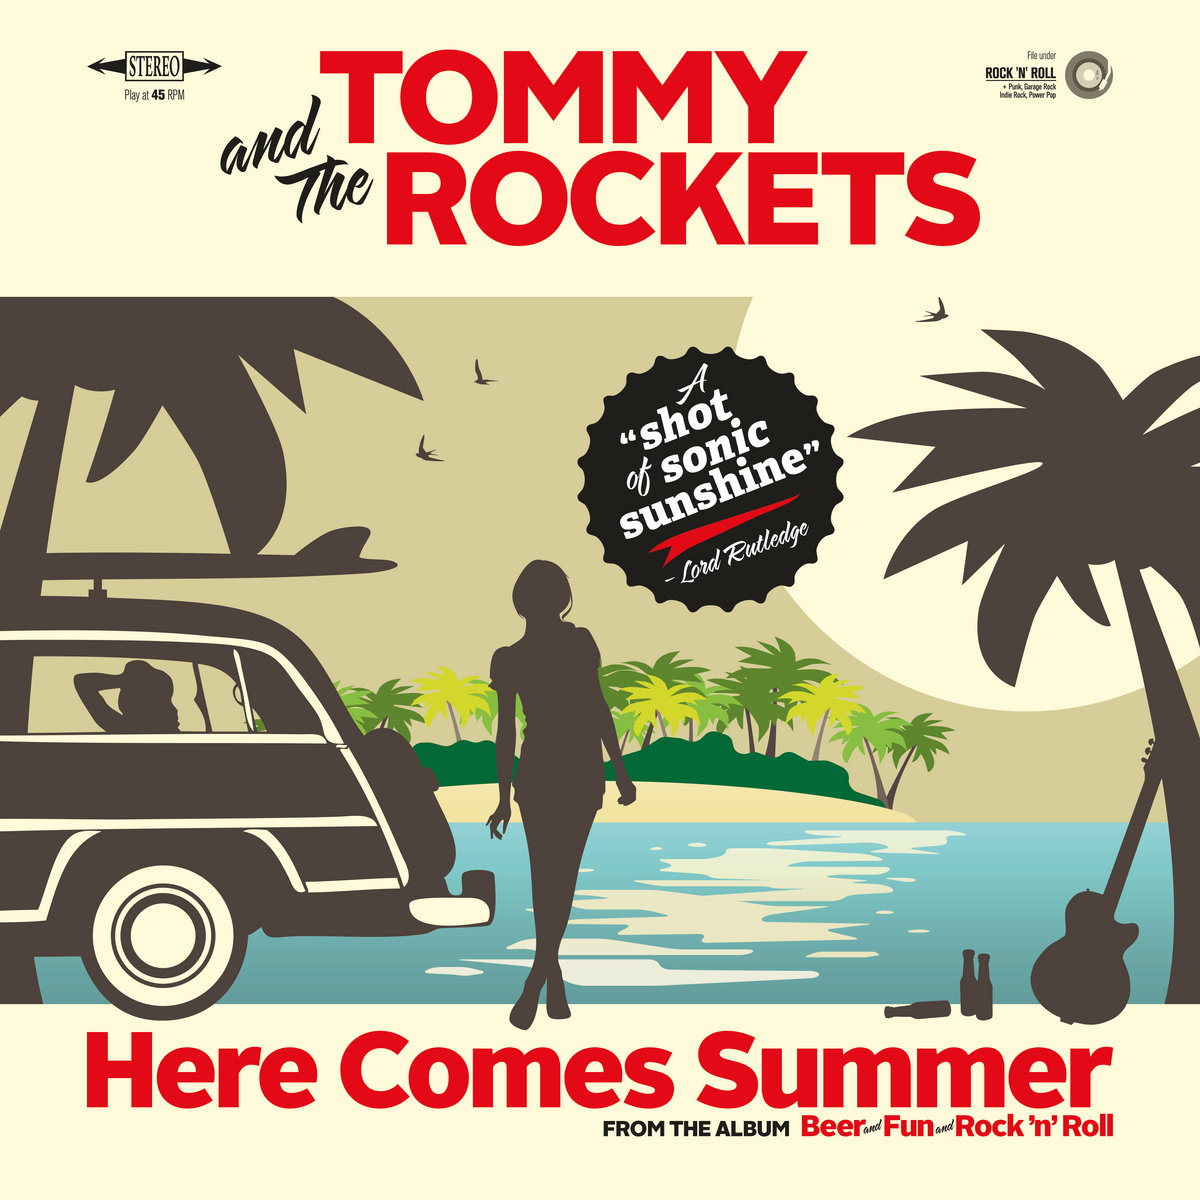 813628e79072c from Here Comes Summer by Tommy And The Rockets